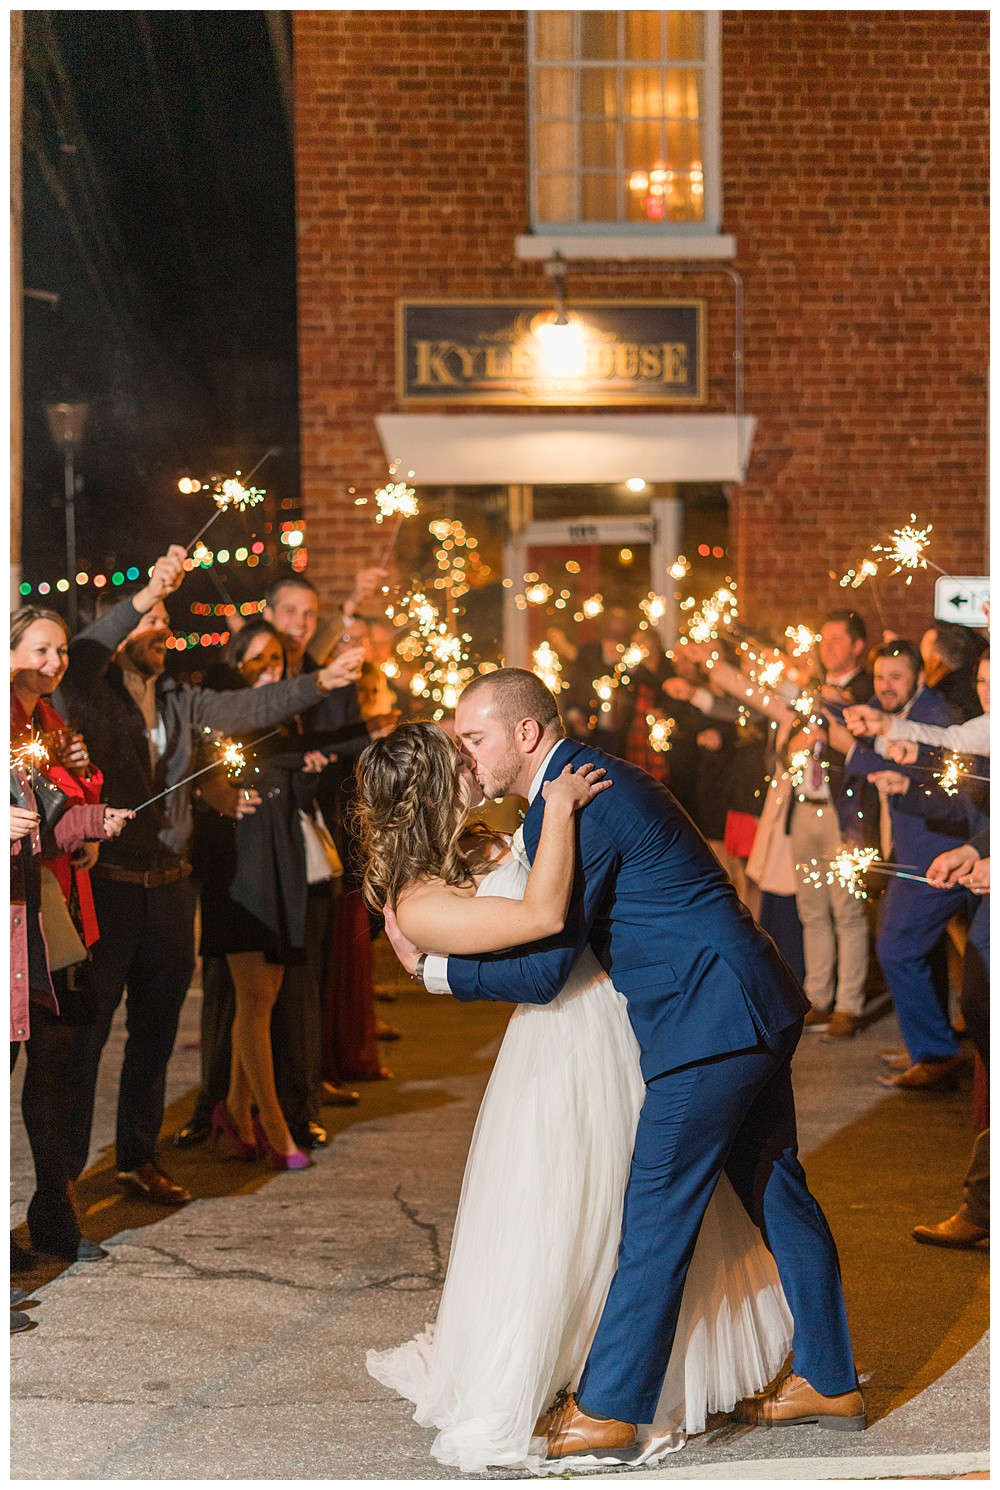 sparkler exit, epic exit, winter wedding, Kyle house, Virginia wedding, Austin & Austin Photography